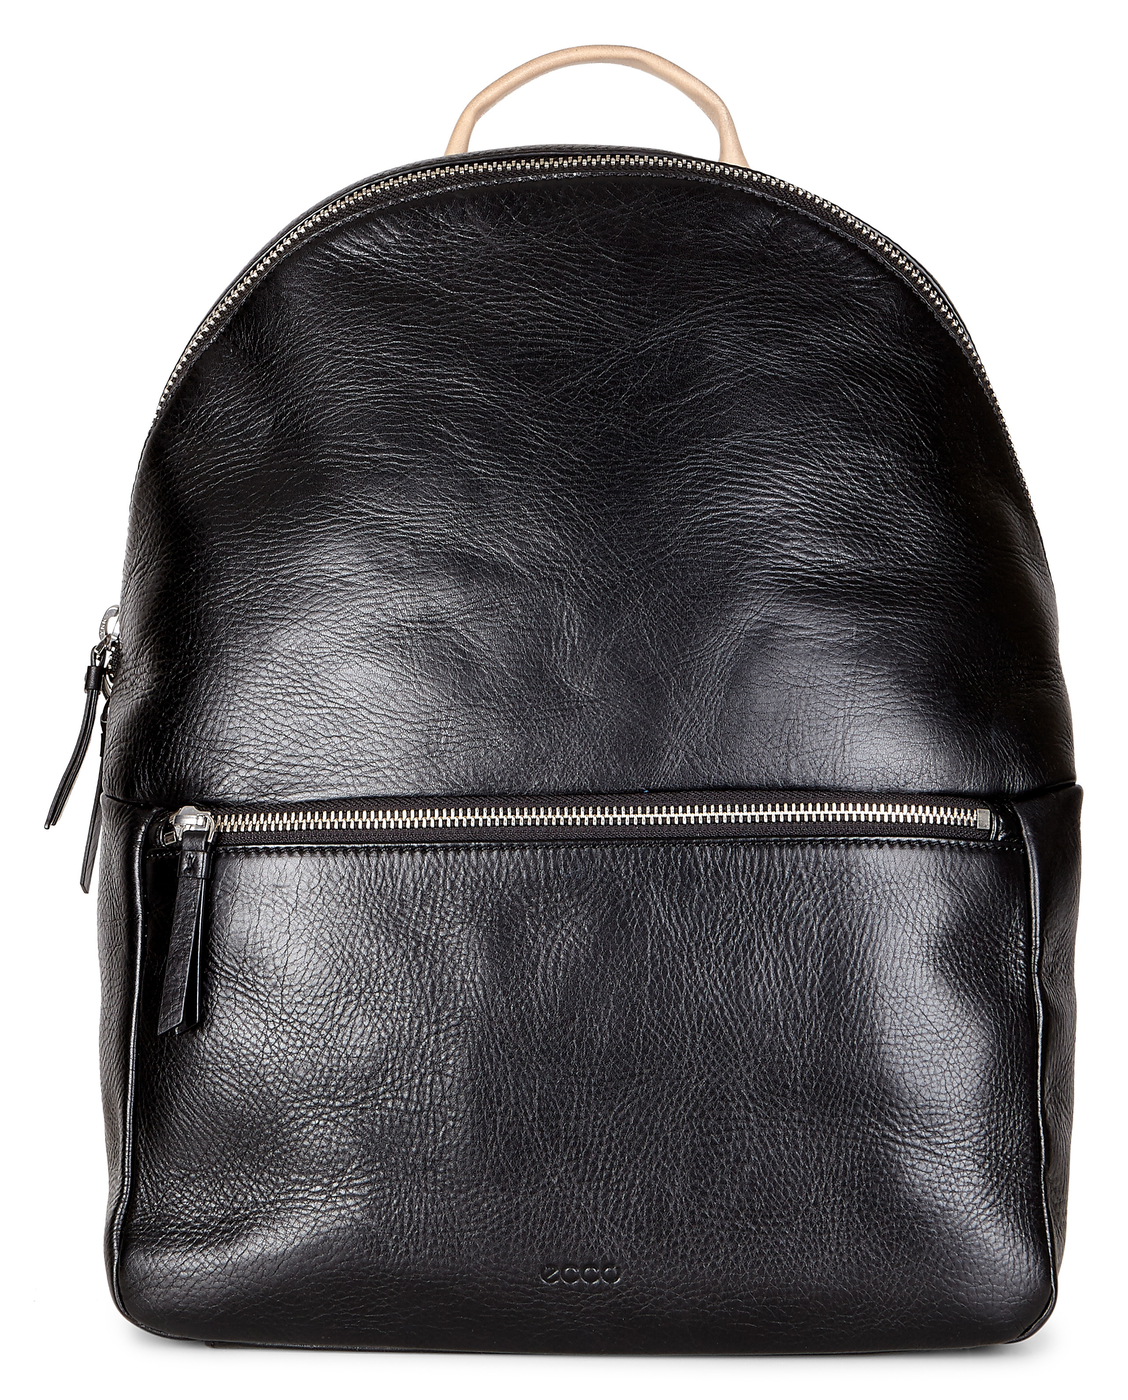 ECCO SP3 Vesper Large Backpack